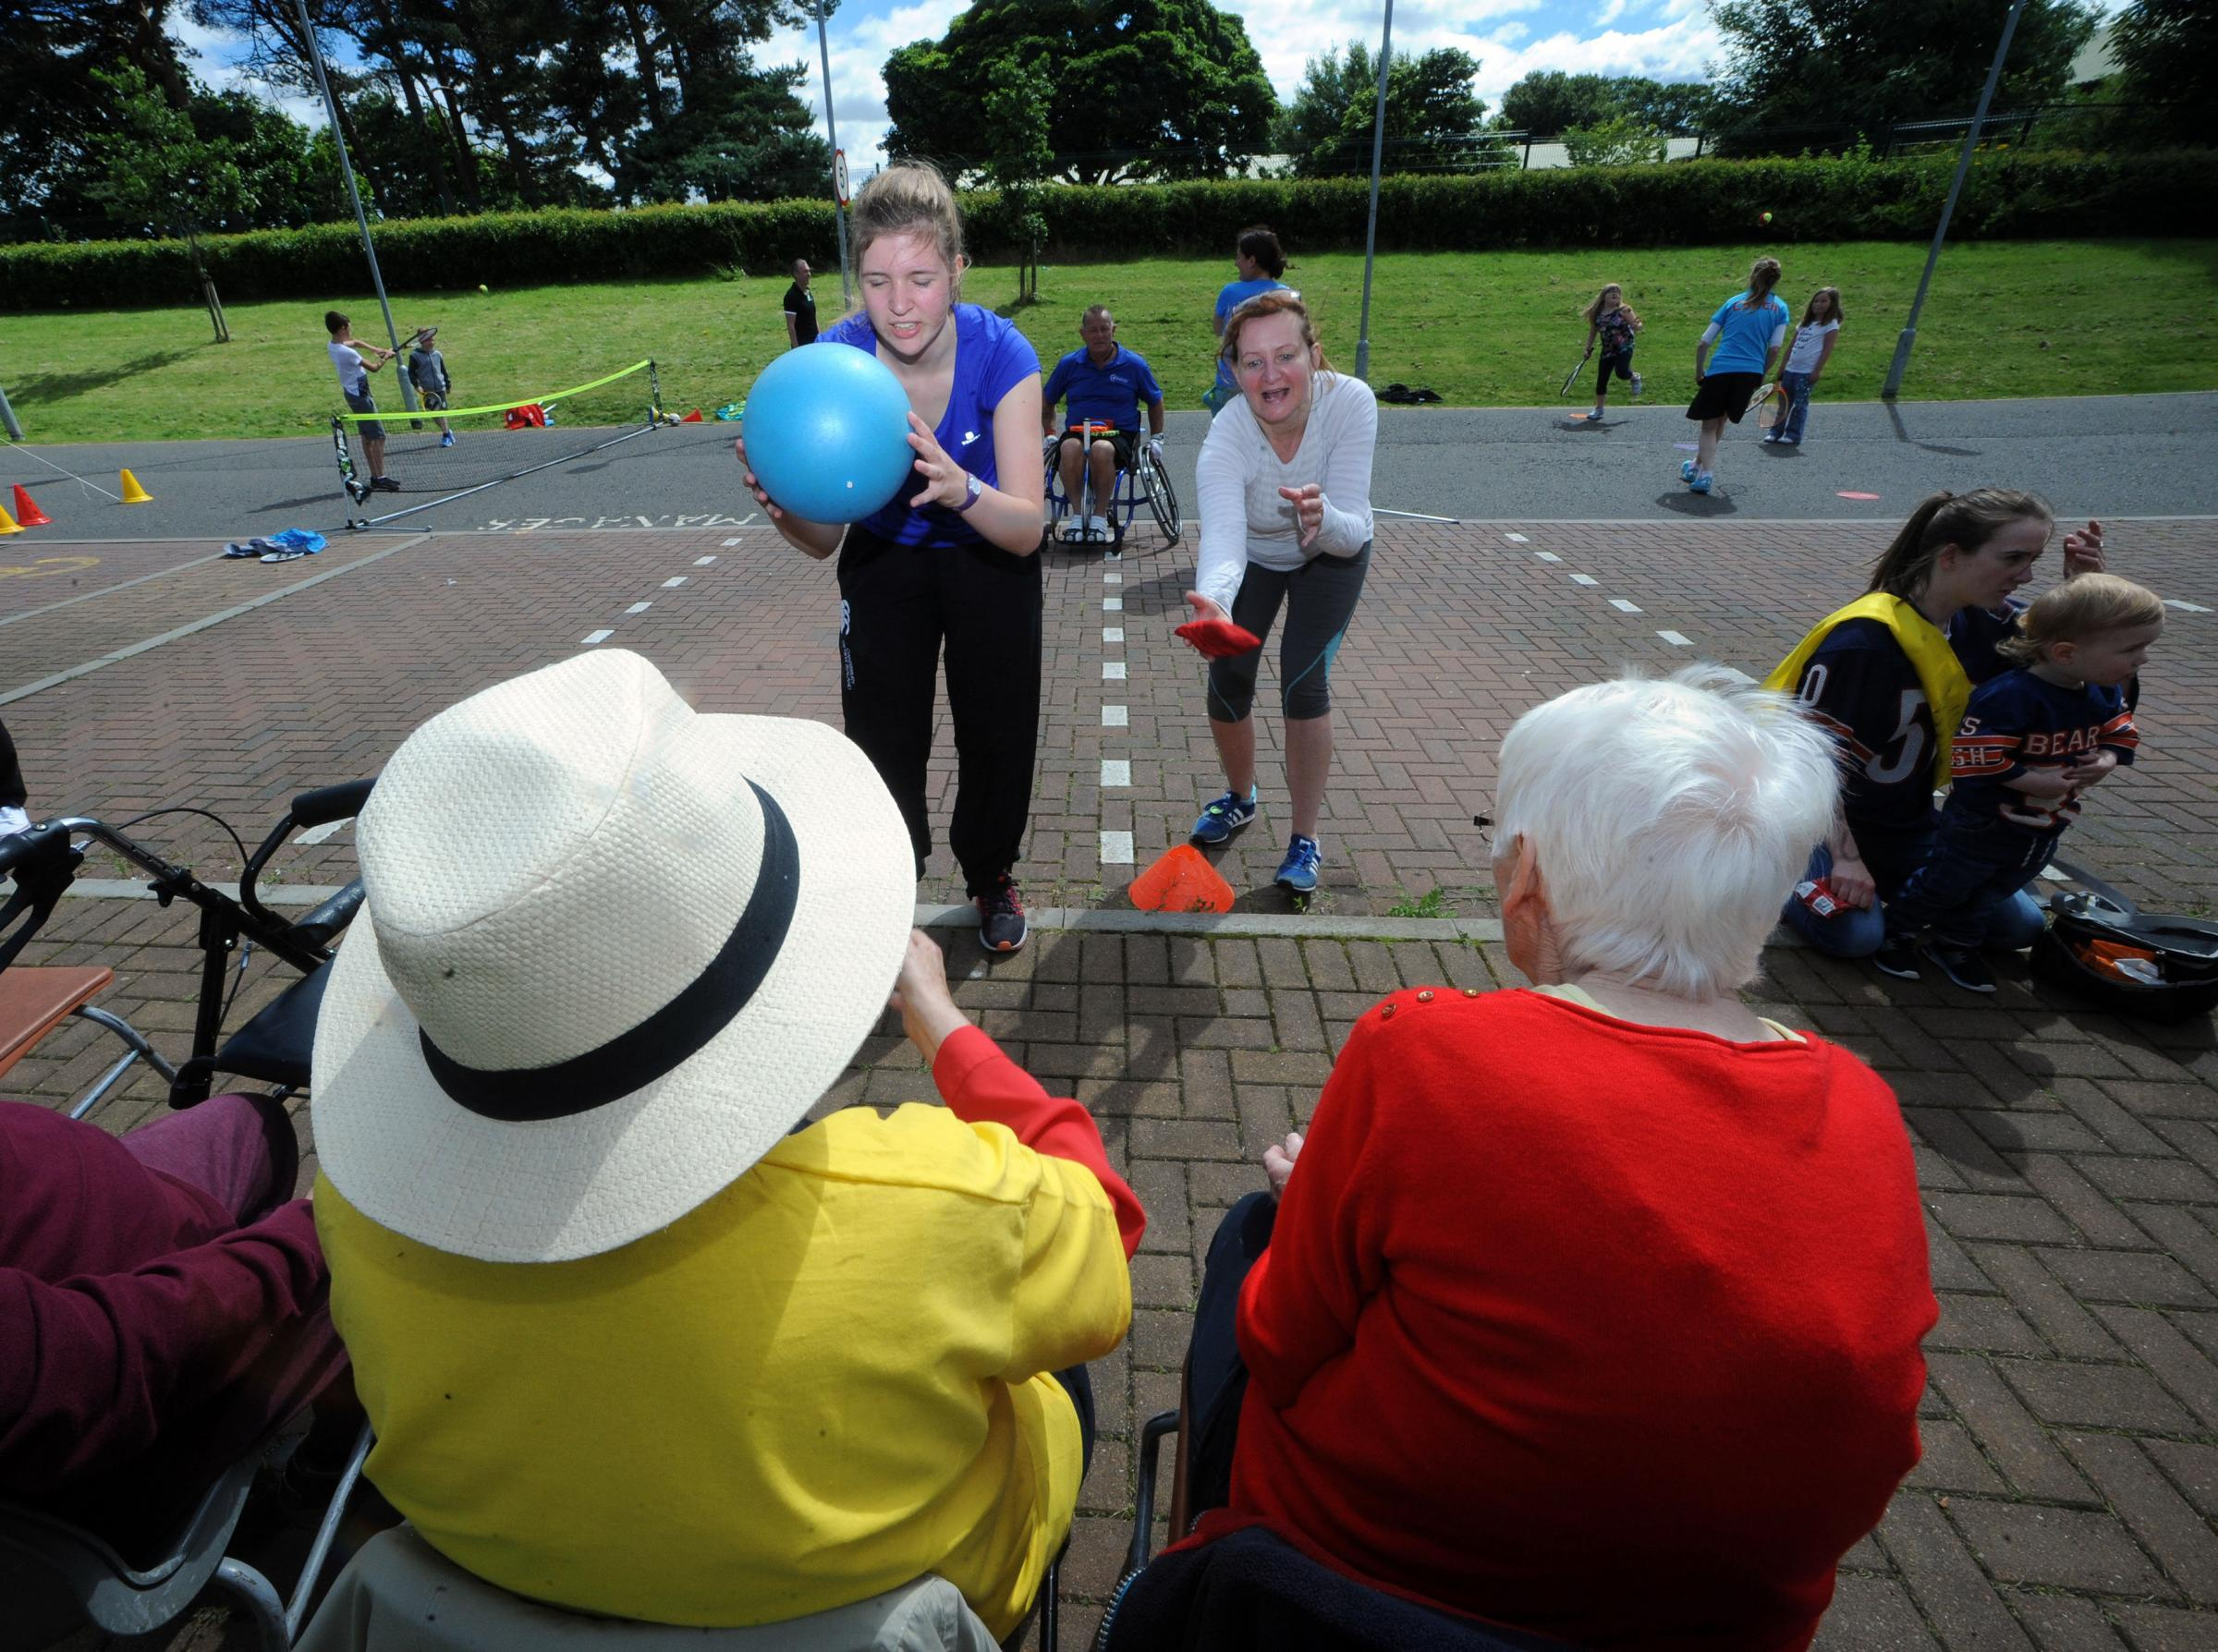 Straight perm edinburgh - Pensioners Go For Gold At Edinburgh S First Ever Care Home Games At Inchview Care Home Heraldscotland